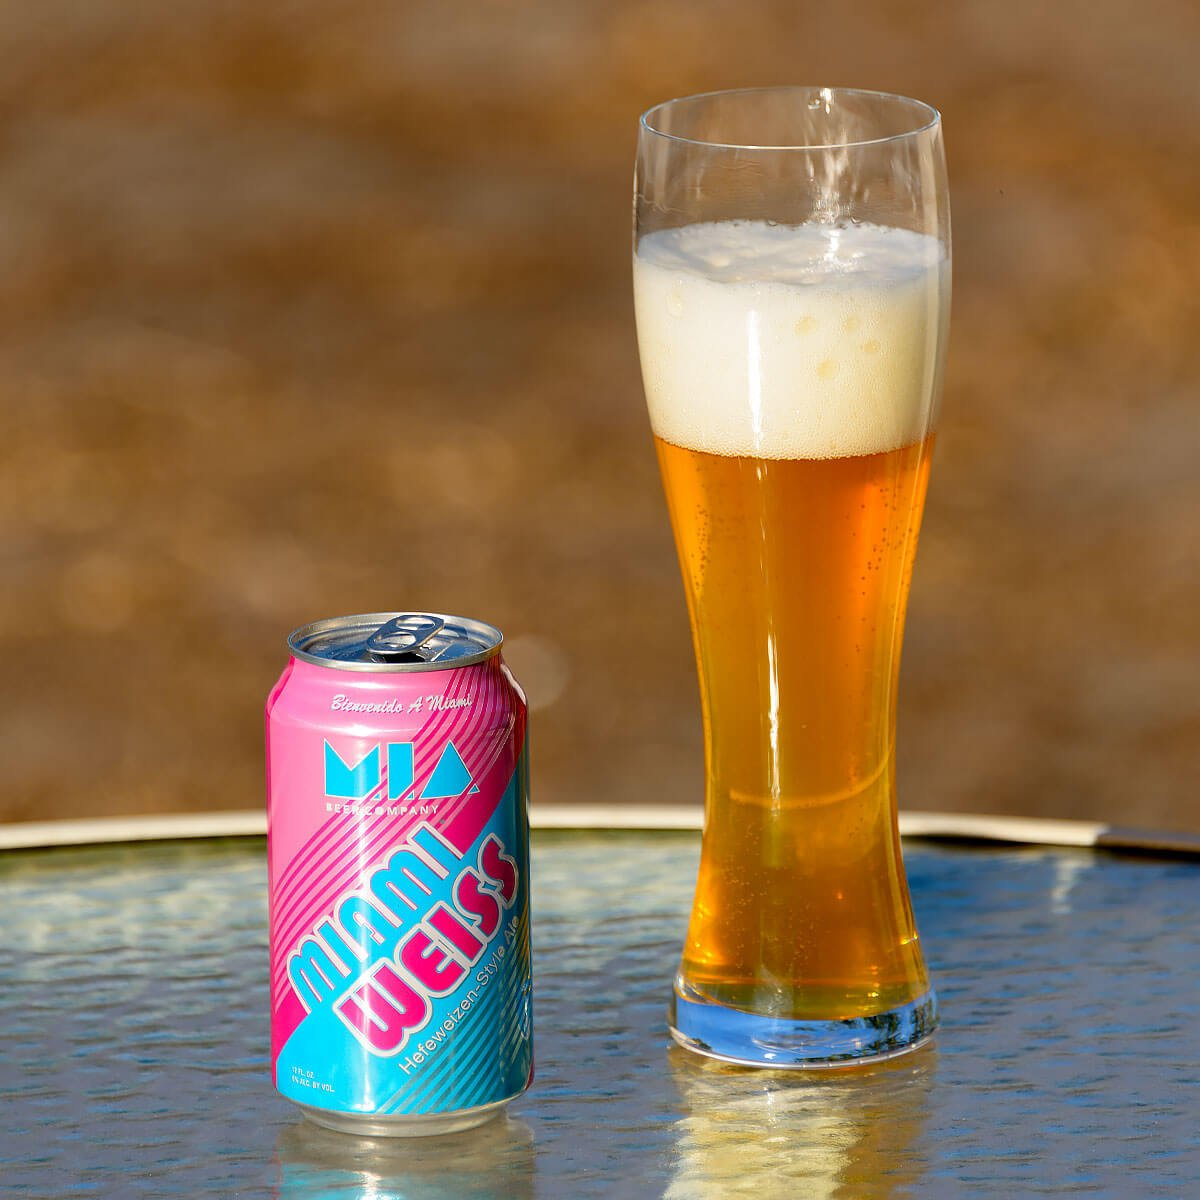 Miami Weiss, a German-style Hefeweizen brewed by MIA Beer Co.